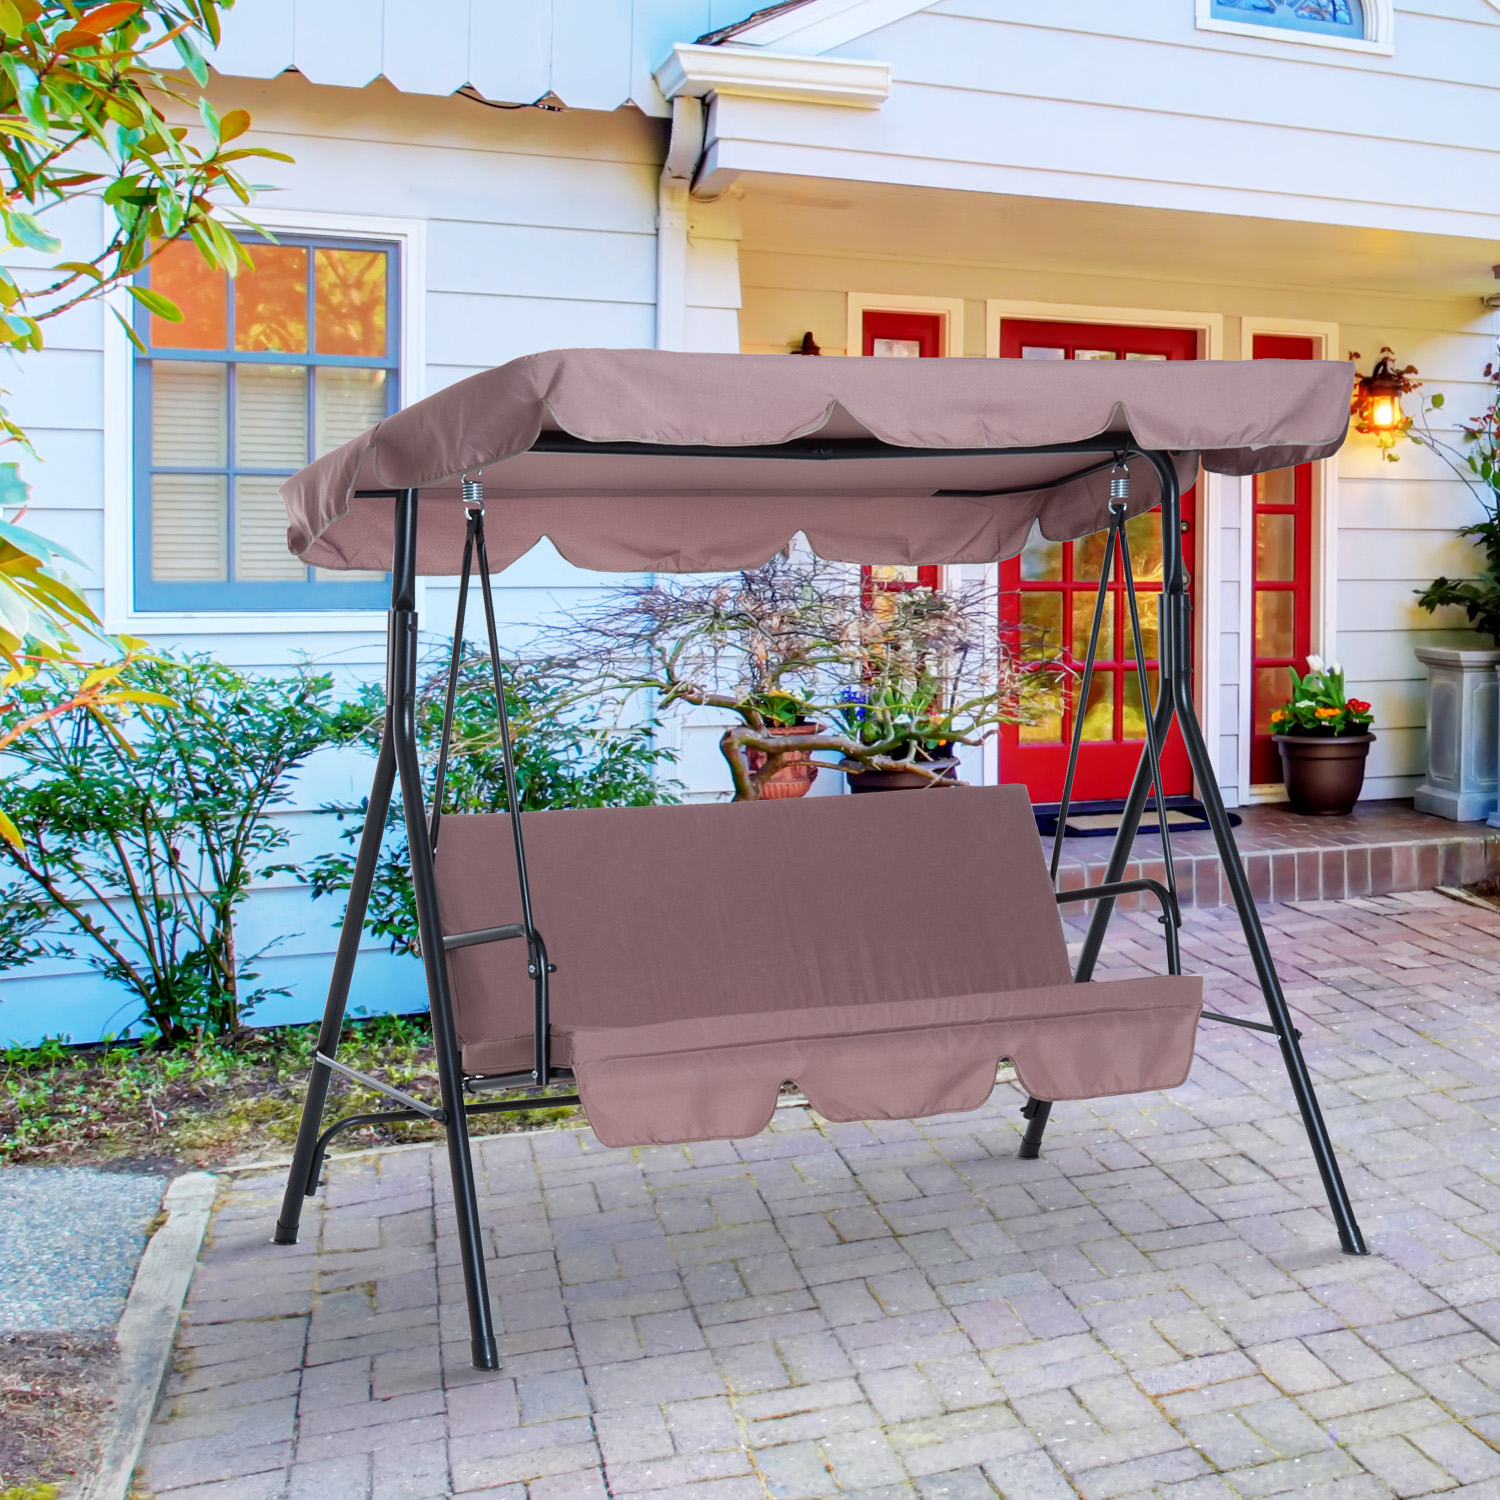 Image of CAD $149.99 Outsunny Meatal 3-Seater Outdoor Patio Swing with Canopy Cushioned Garden Lounger Brown / Chair Hammock Frame and 3 Seater Glider Seat Portable w/ Tile Canada 95509791528